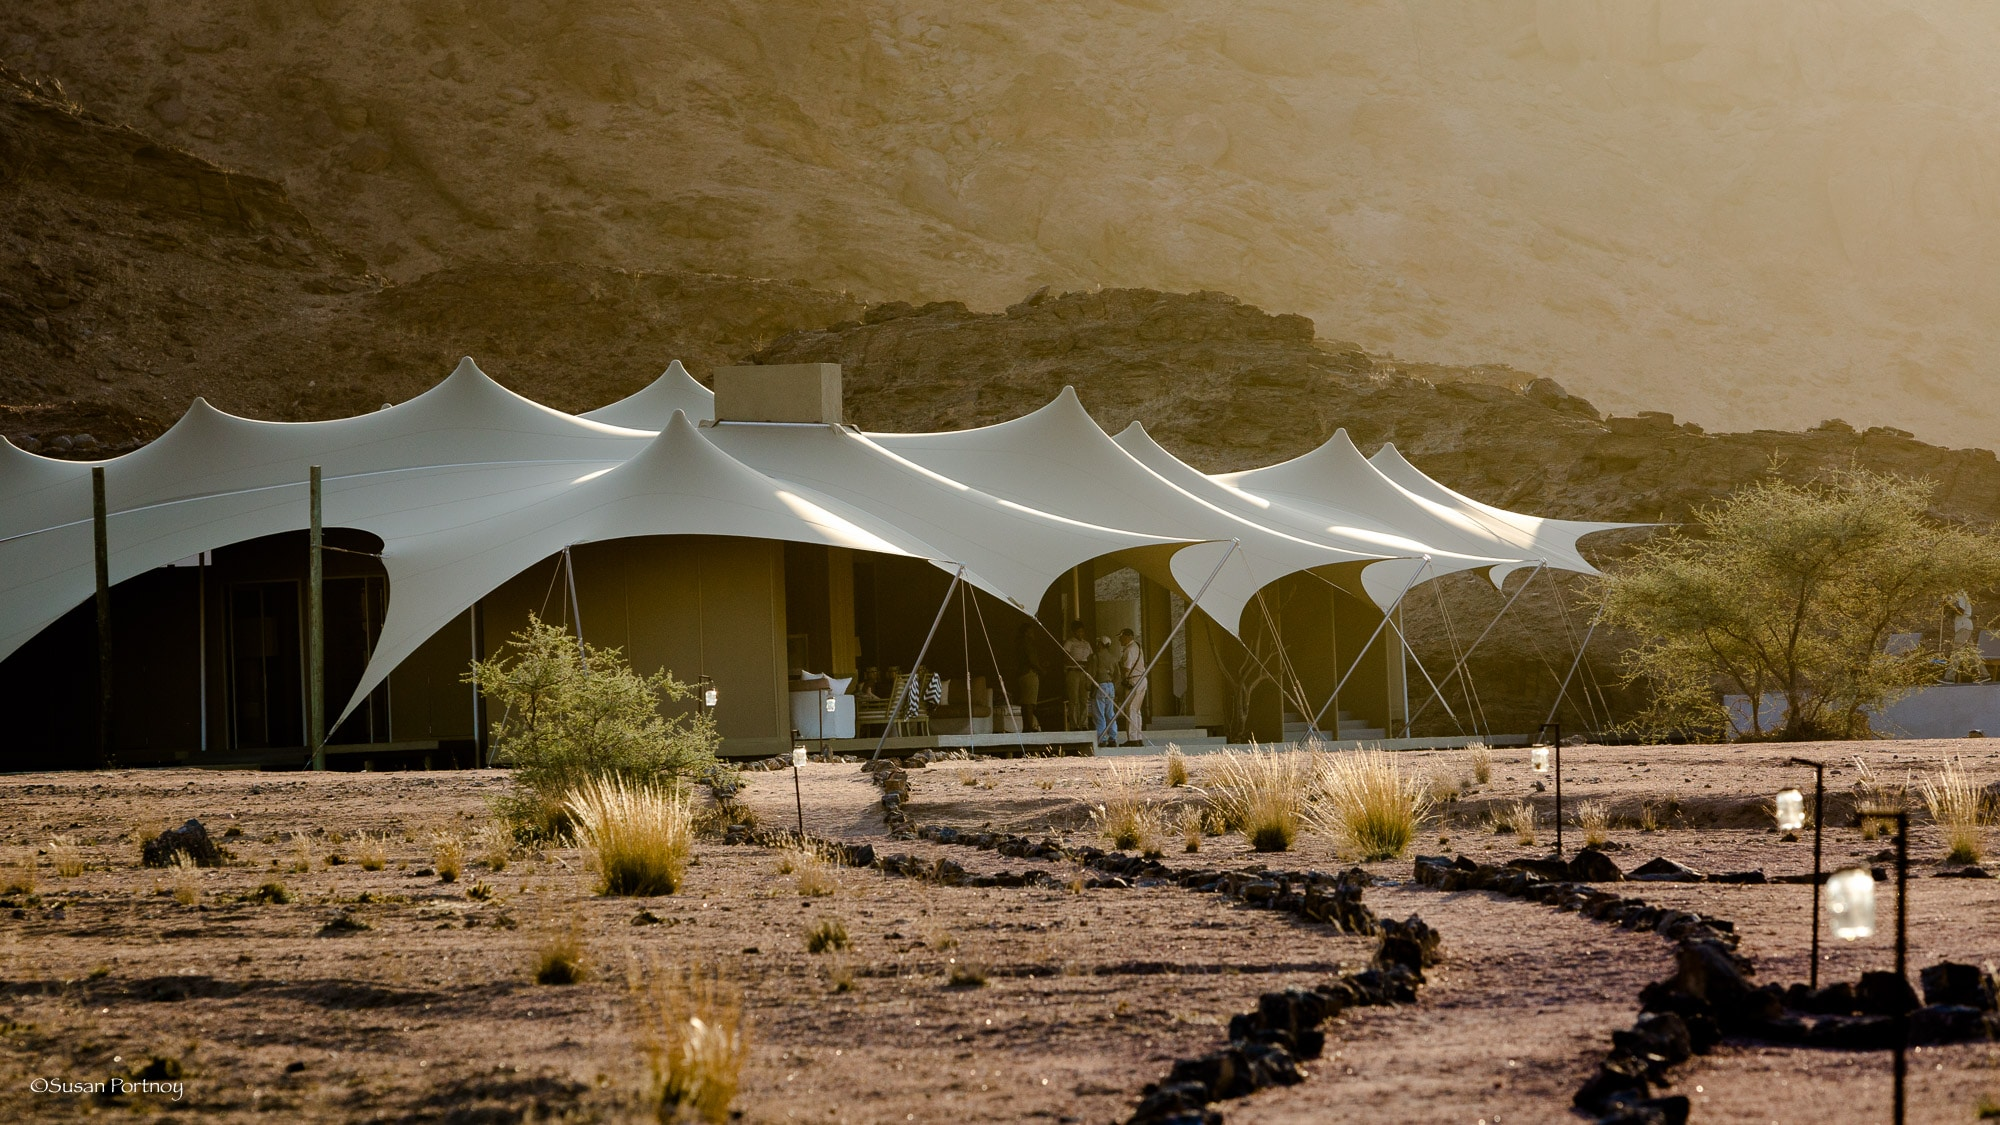 Main Tent at Haonib Skeleton Coast C& Namibia & My Vote for a New JJ Abramu0027s Flick - Hoanib Skeleton Coast Camp